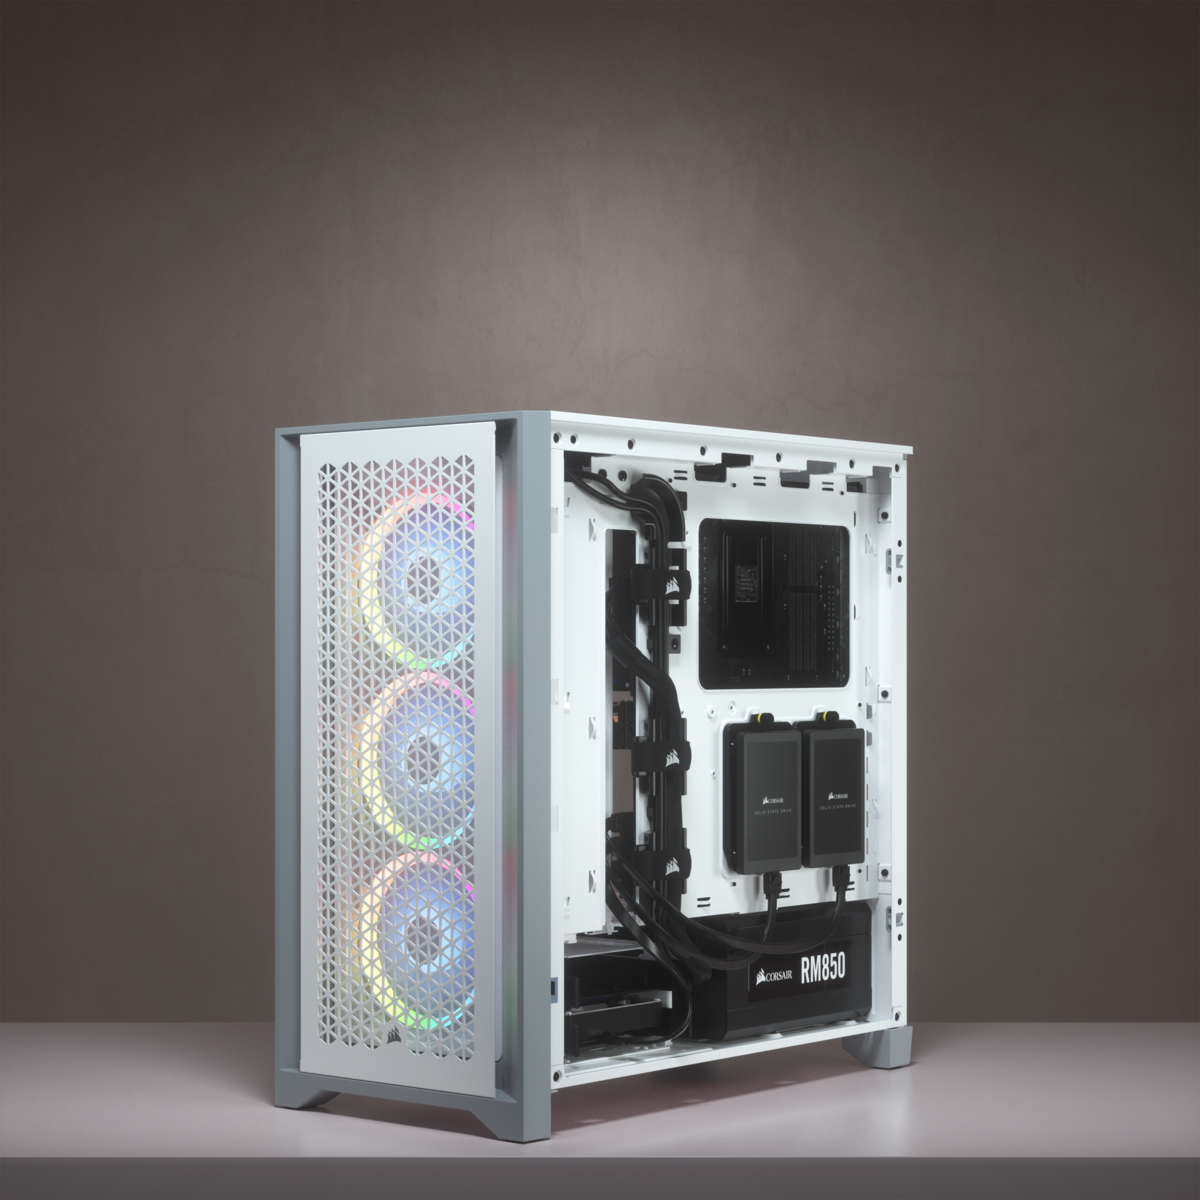 4000D AIRFLOW WHITE +2 FANS - CORSAIR